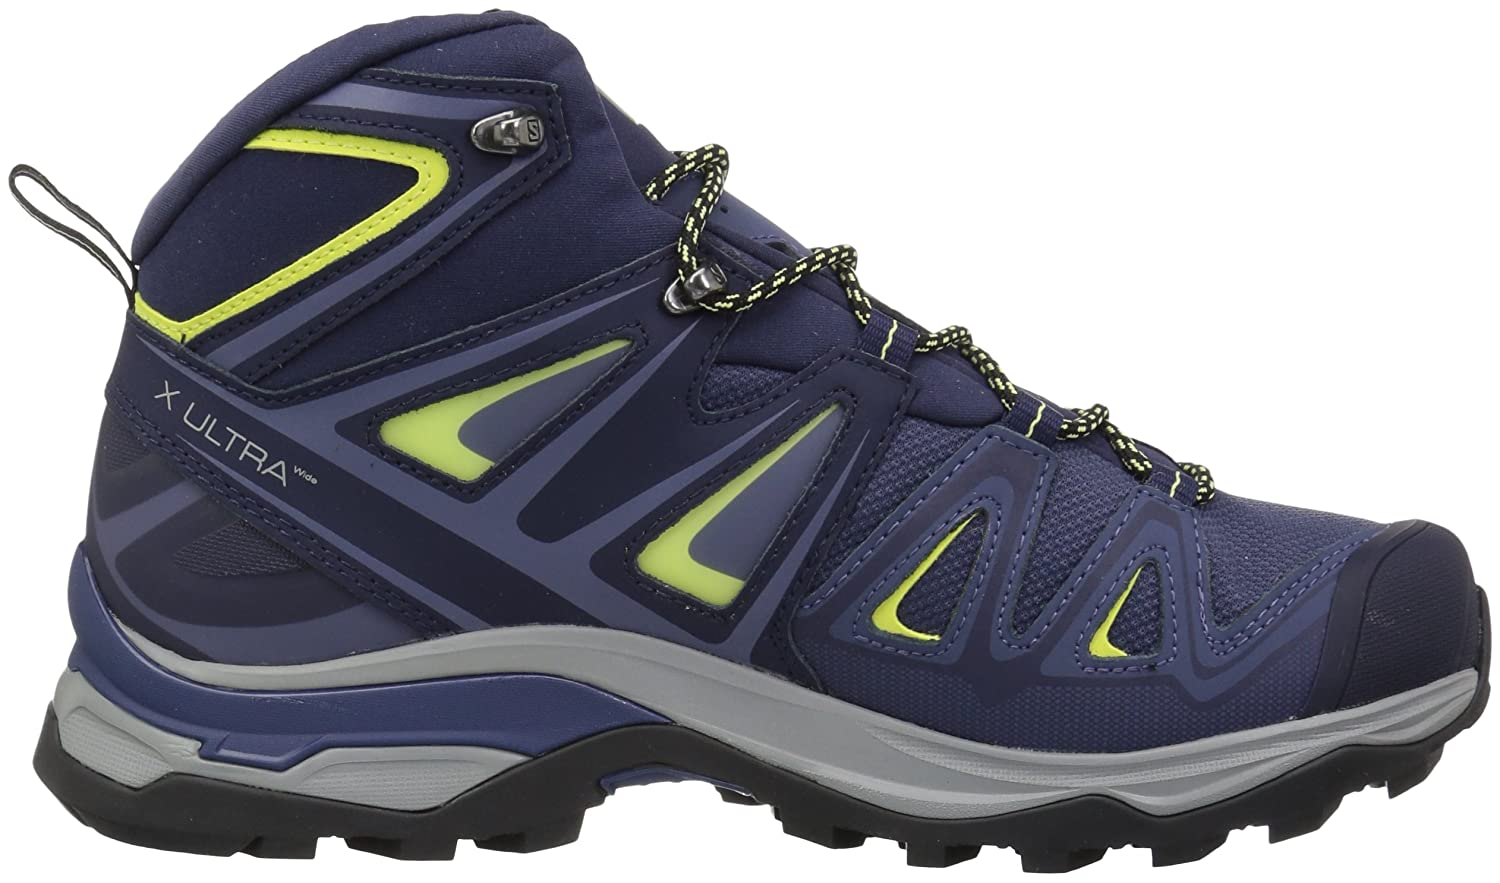 Salomon Women's X Ultra 3 Wide Mid GTX Hiking Shoes B073JXPG6W 6.5 M US|Crown Blue